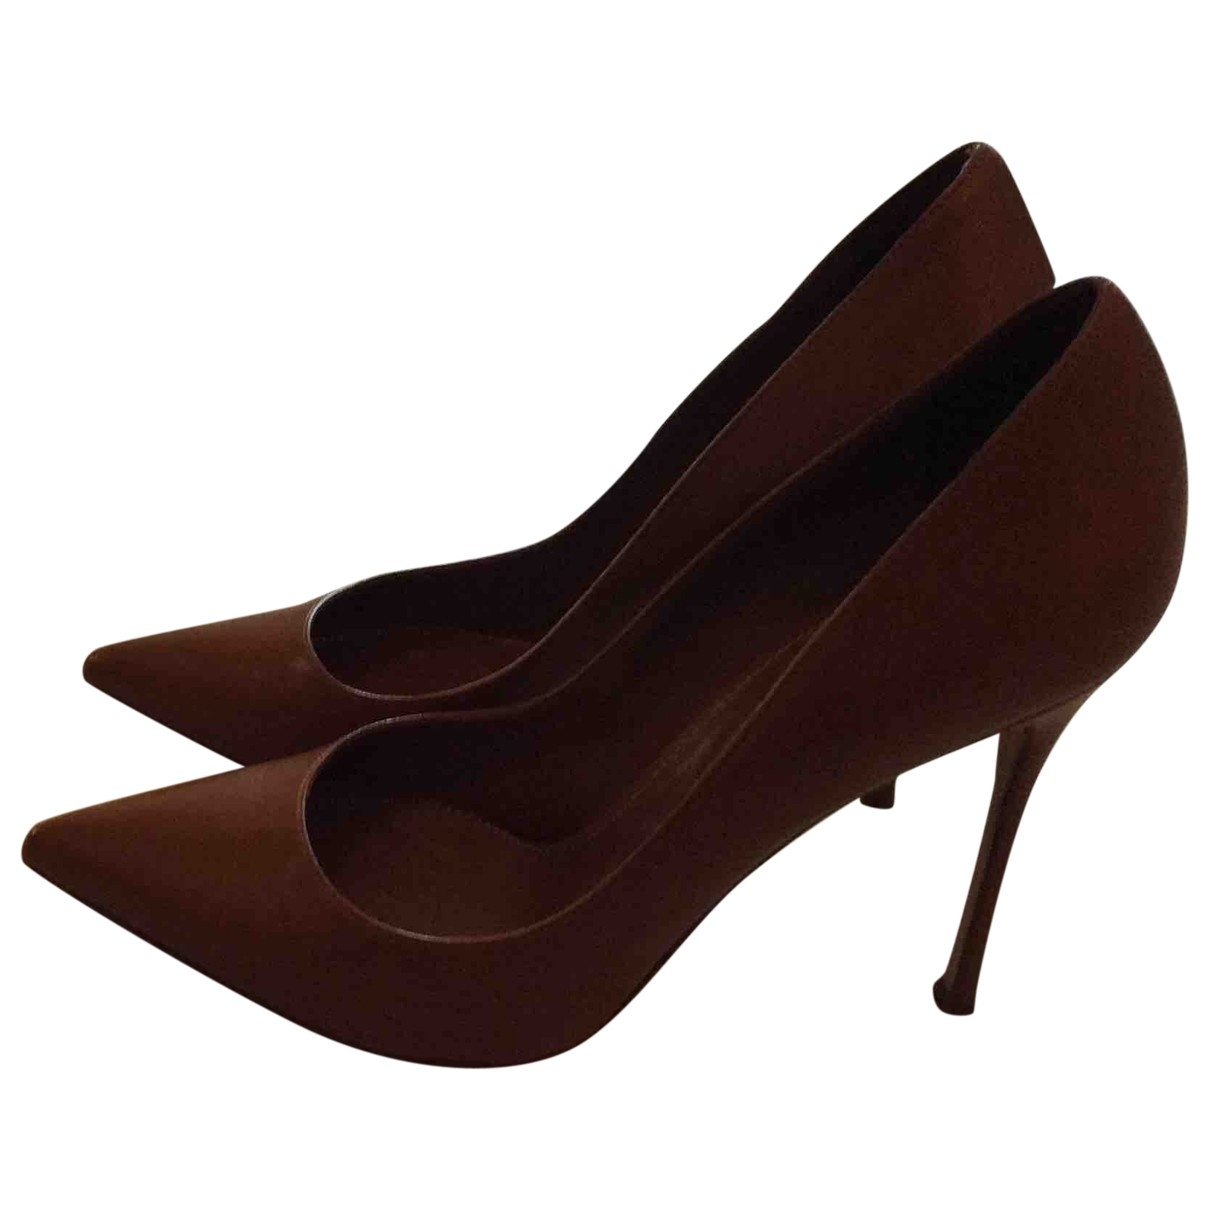 Sergio Rossi \N Brown Leather Heels for Women 39 EU